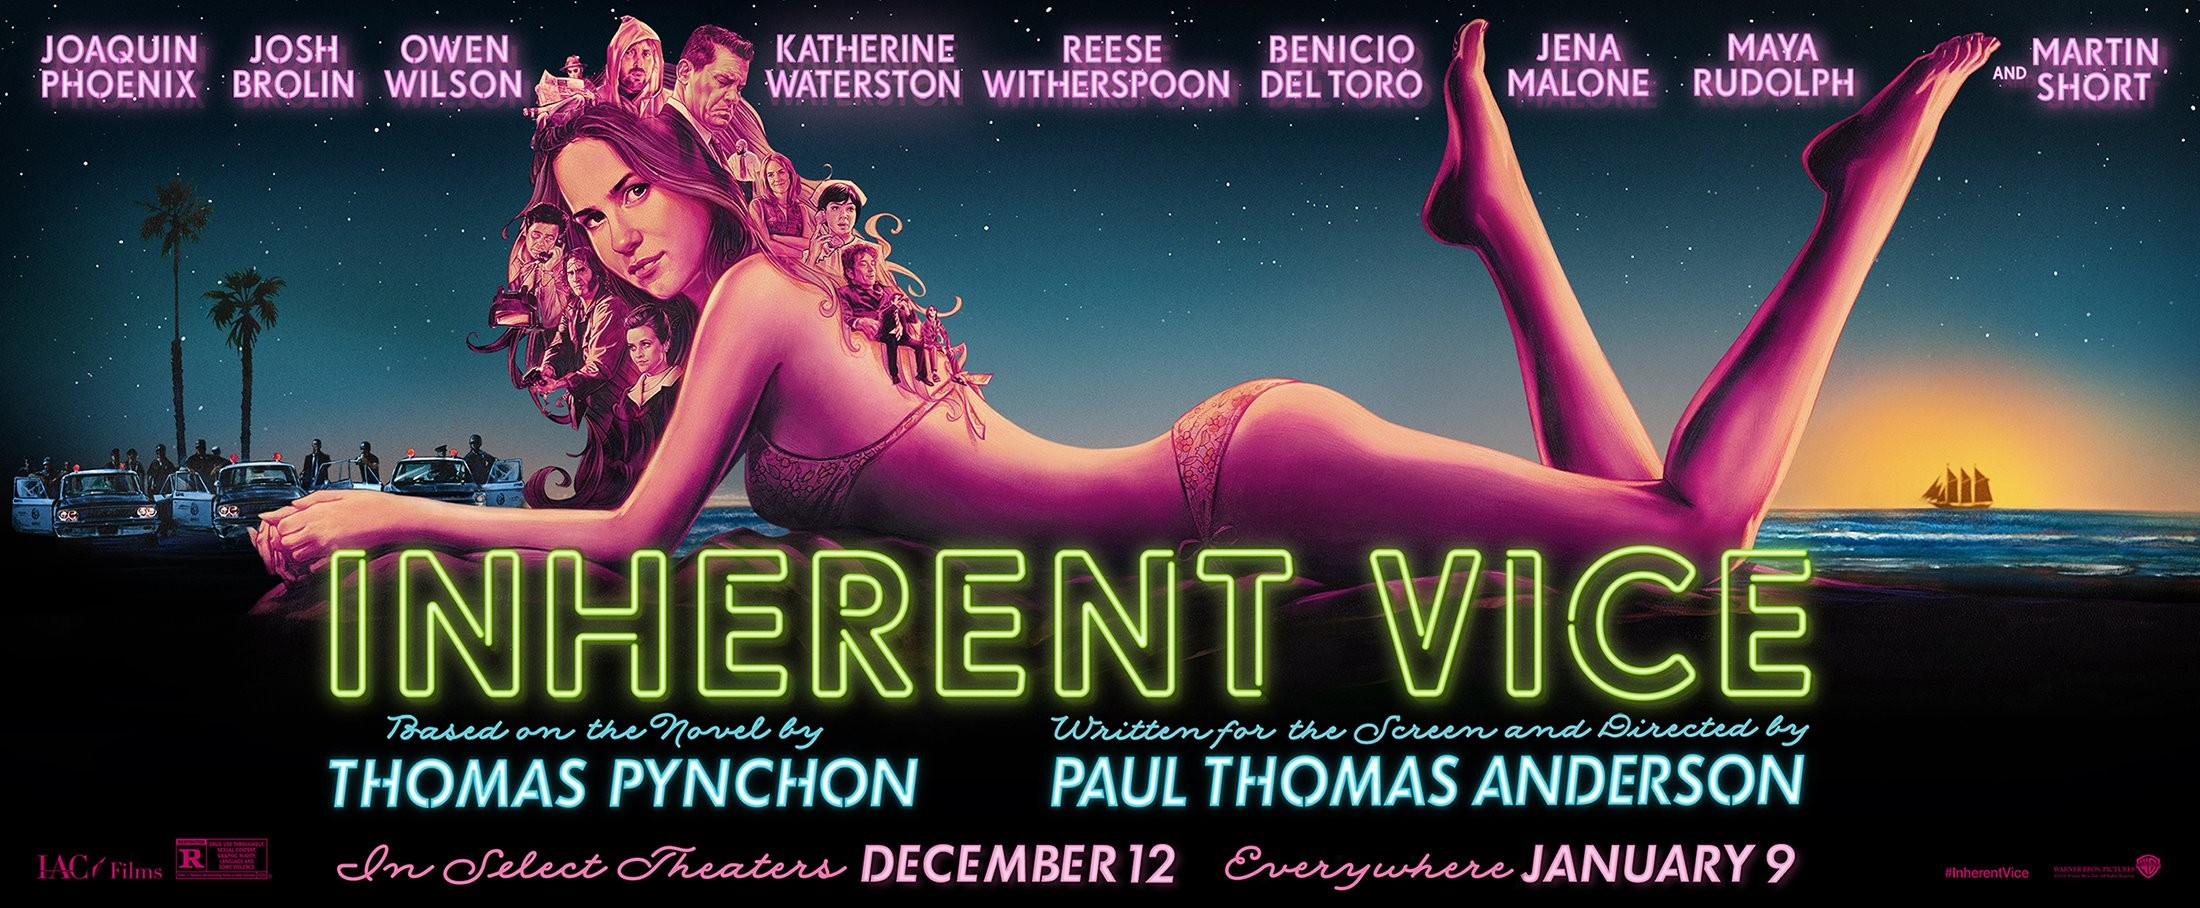 Inherent Vice-Official Poster XXLG-18NOVEMBRO2014-01